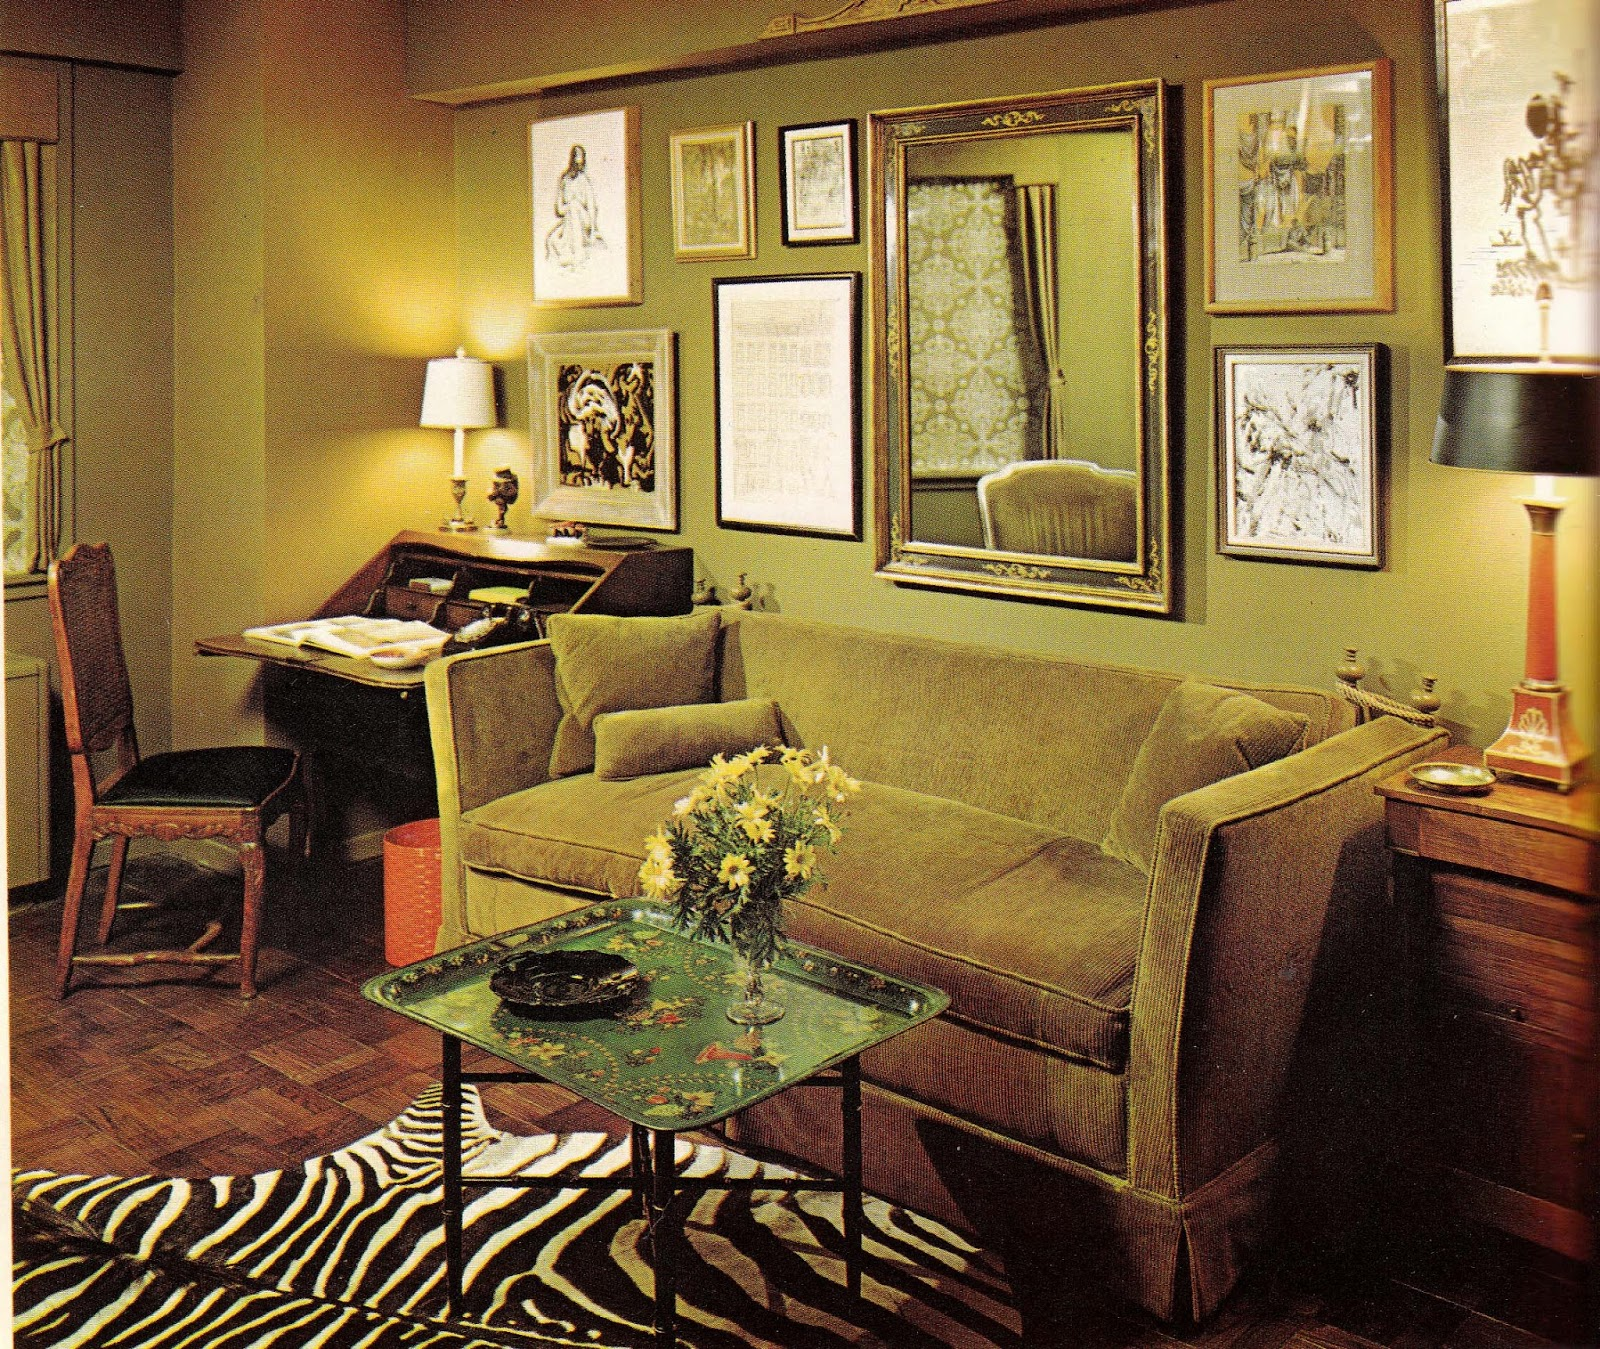 1960s Interior Dcor: The Decade of Psychedelia Gave Rise ...